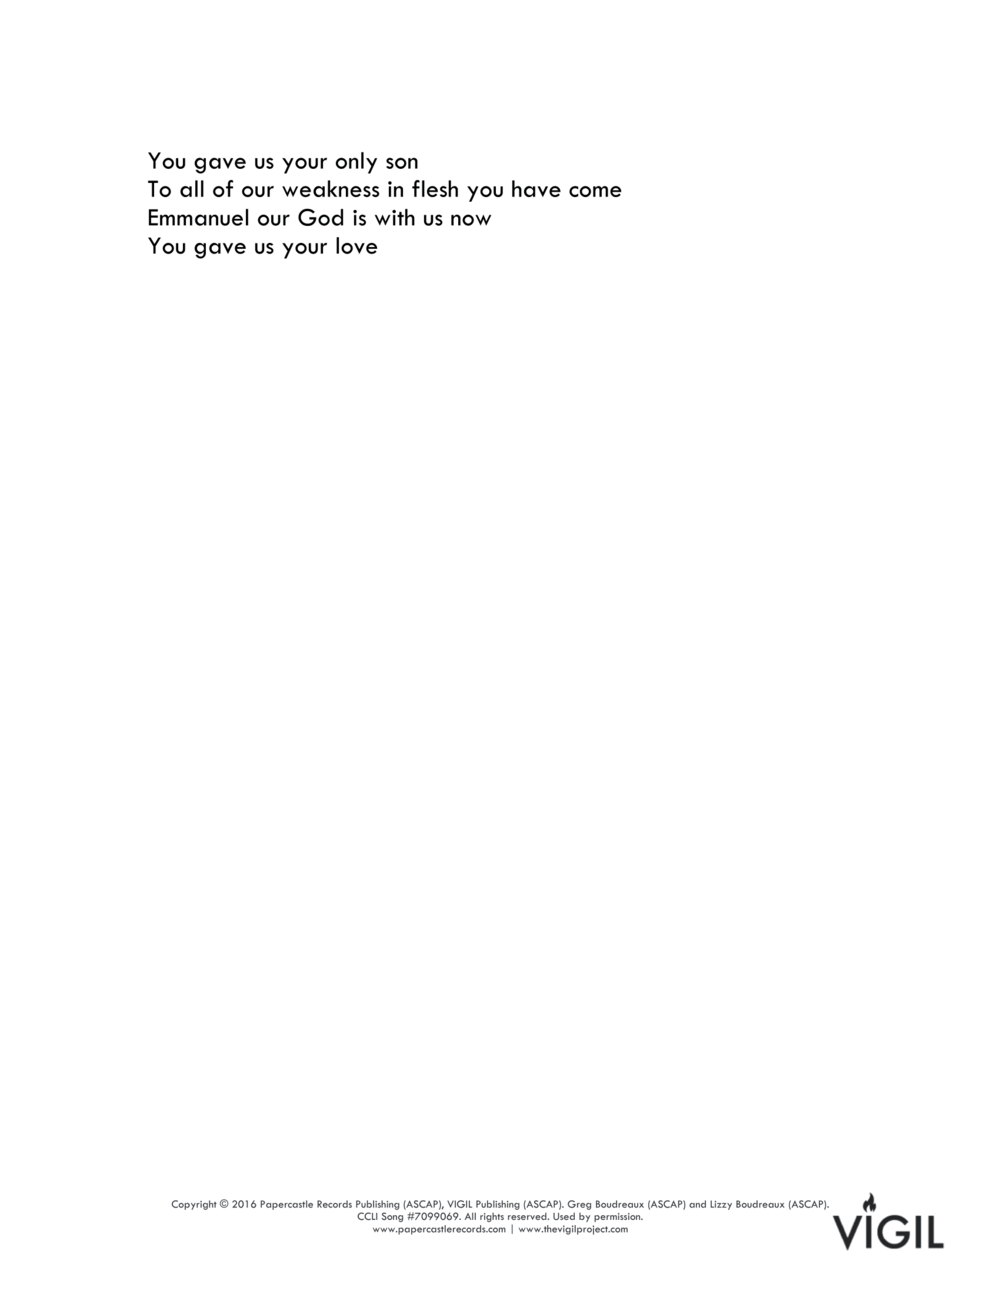 VIGIL S2 - You Gave Us Your Love (Lyrics)-2.png